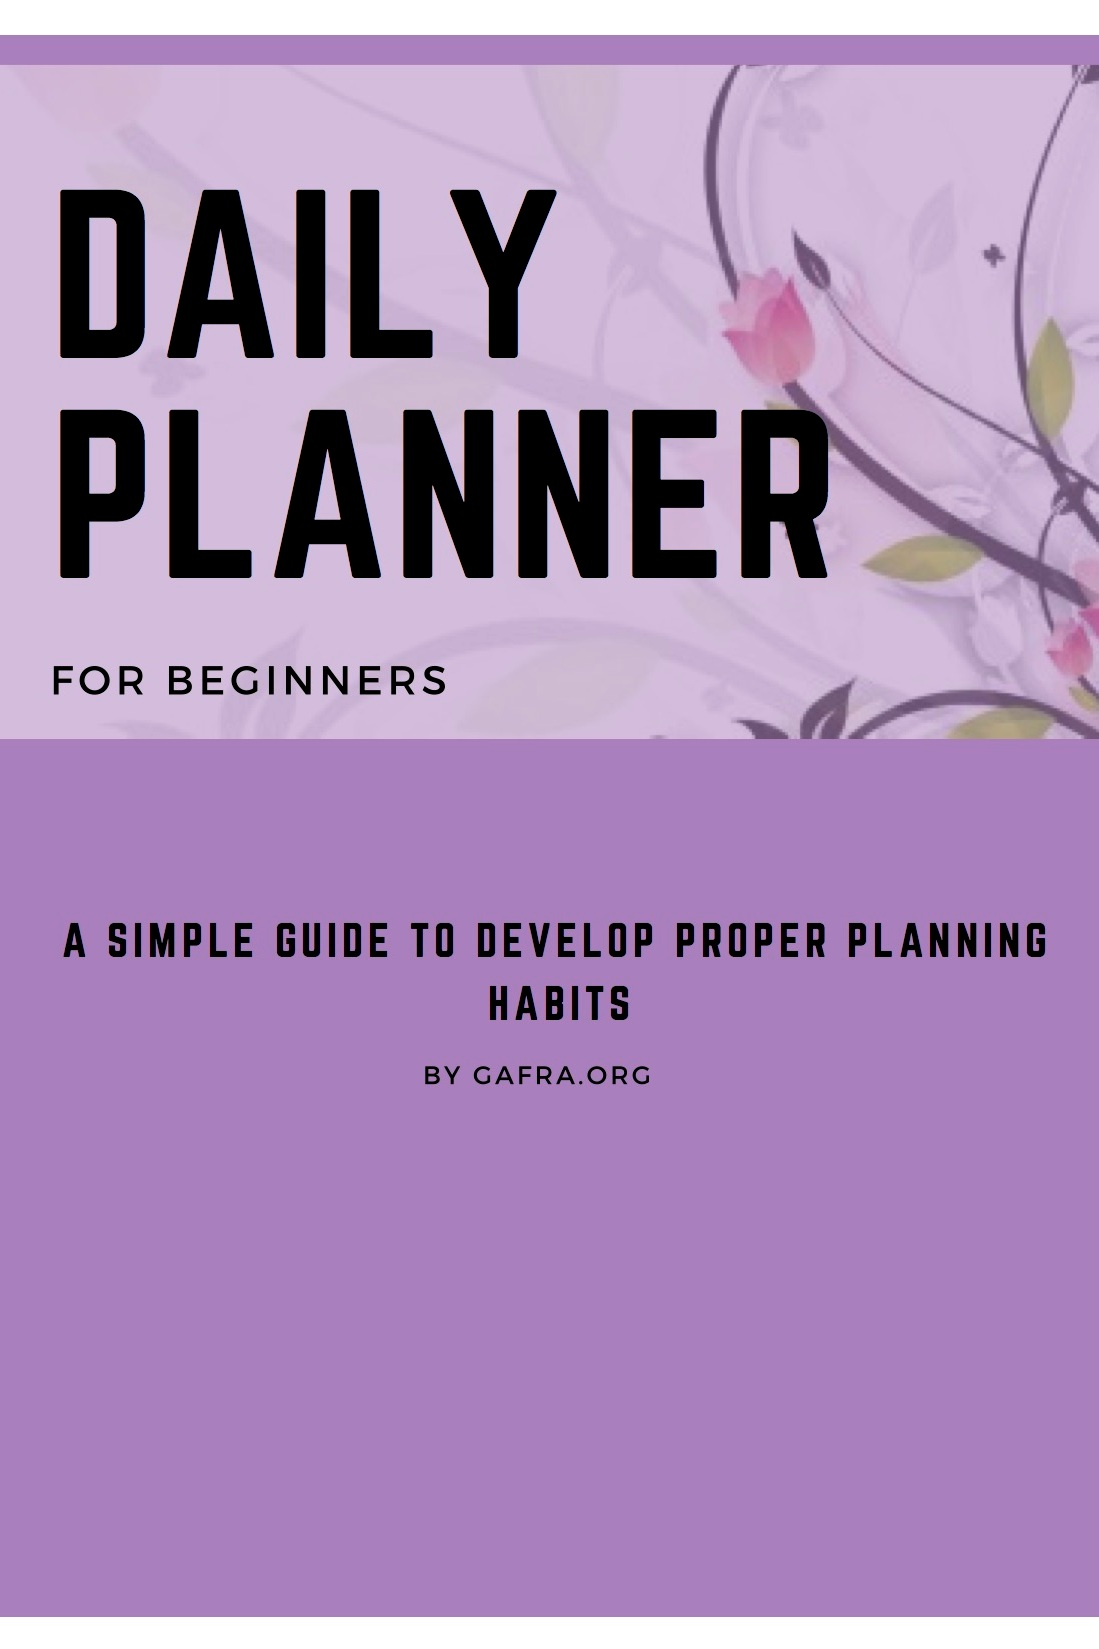 Get your   FREE DAILY PLANNER   here - gafra.org